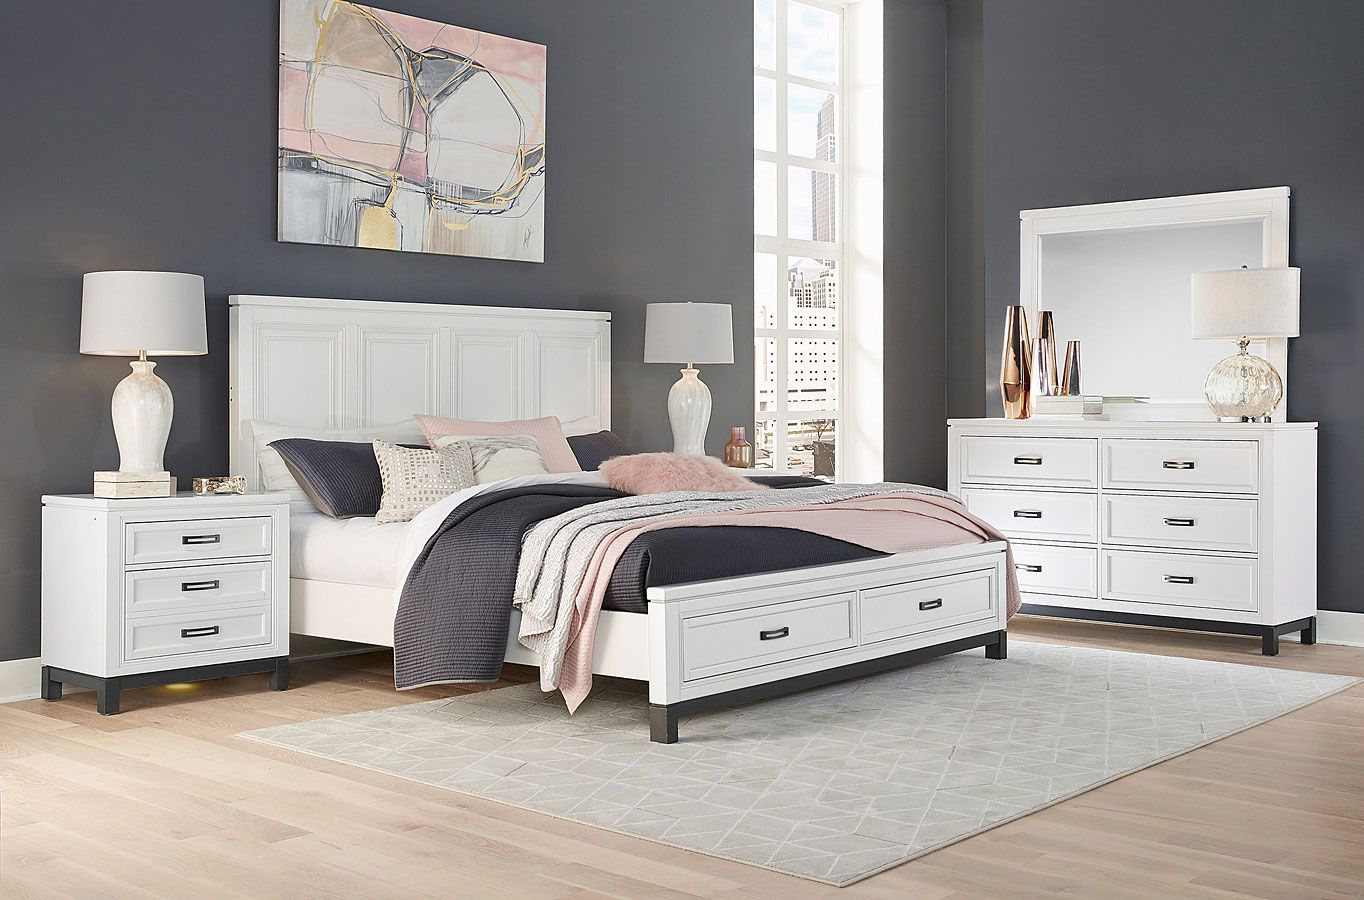 Hyde Park Storage Bedroom Set (White Paint) in 2020 (With